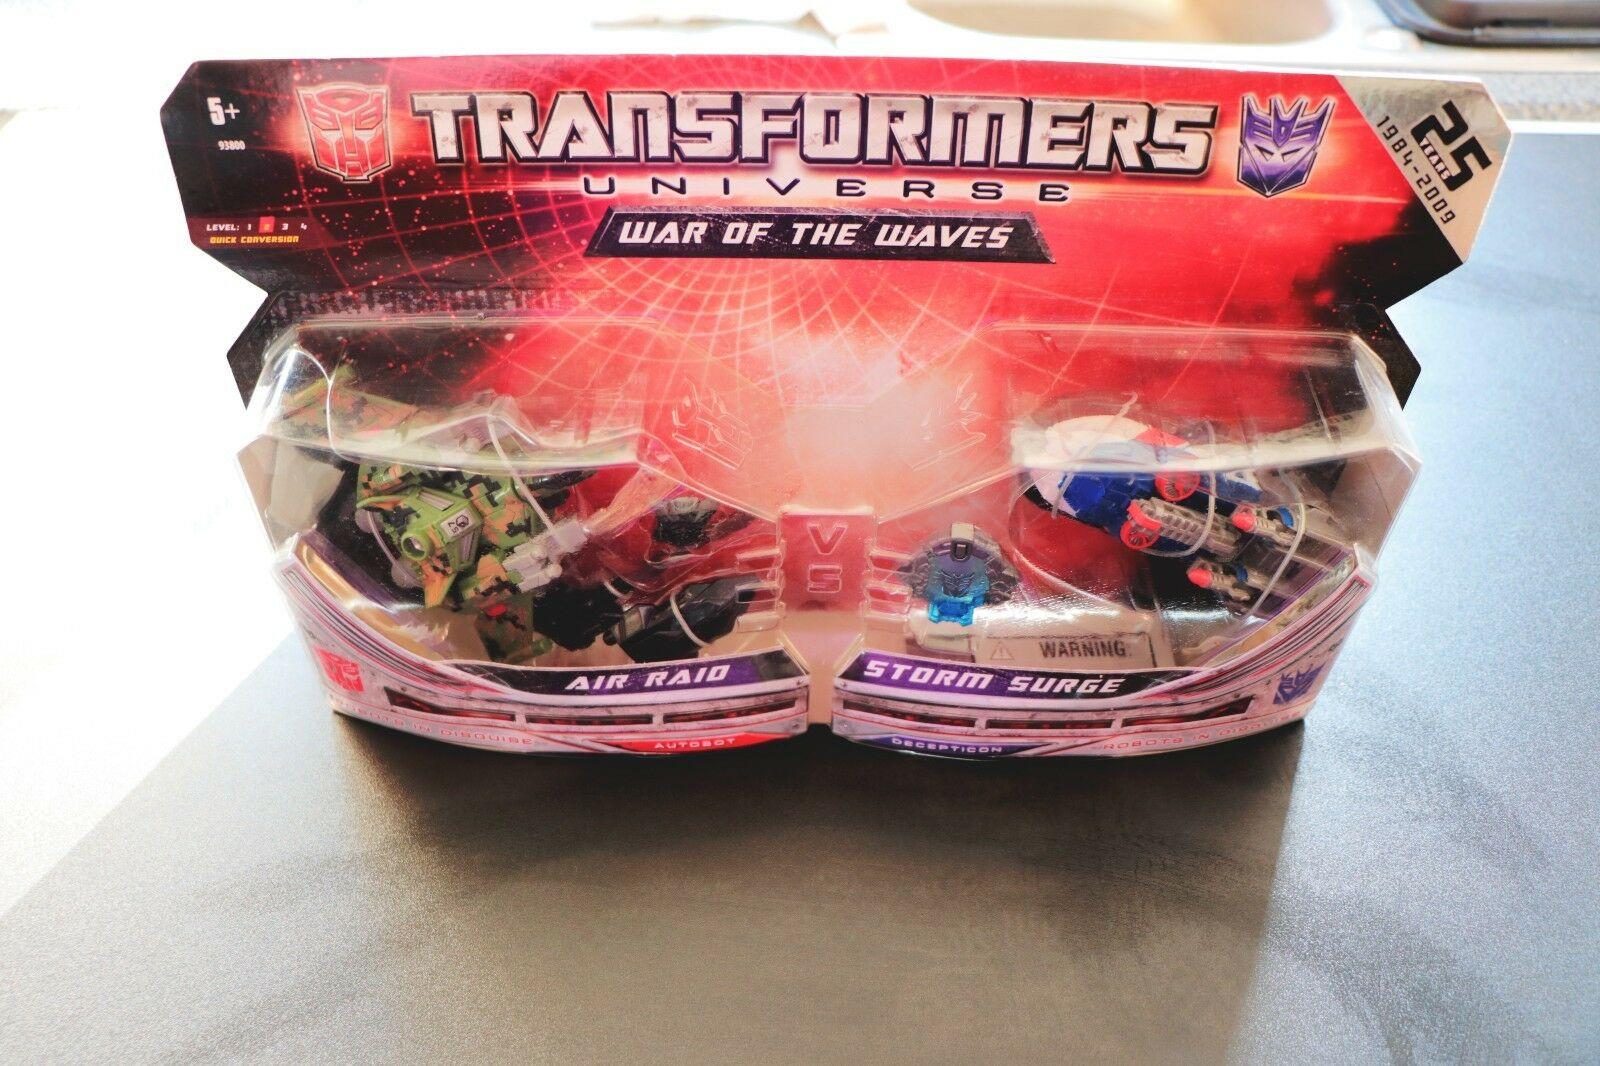 TRANSFORMERS AIR RAID & STORM SURGE ACTION FIGURES 25TH ANNIVERSARY SET